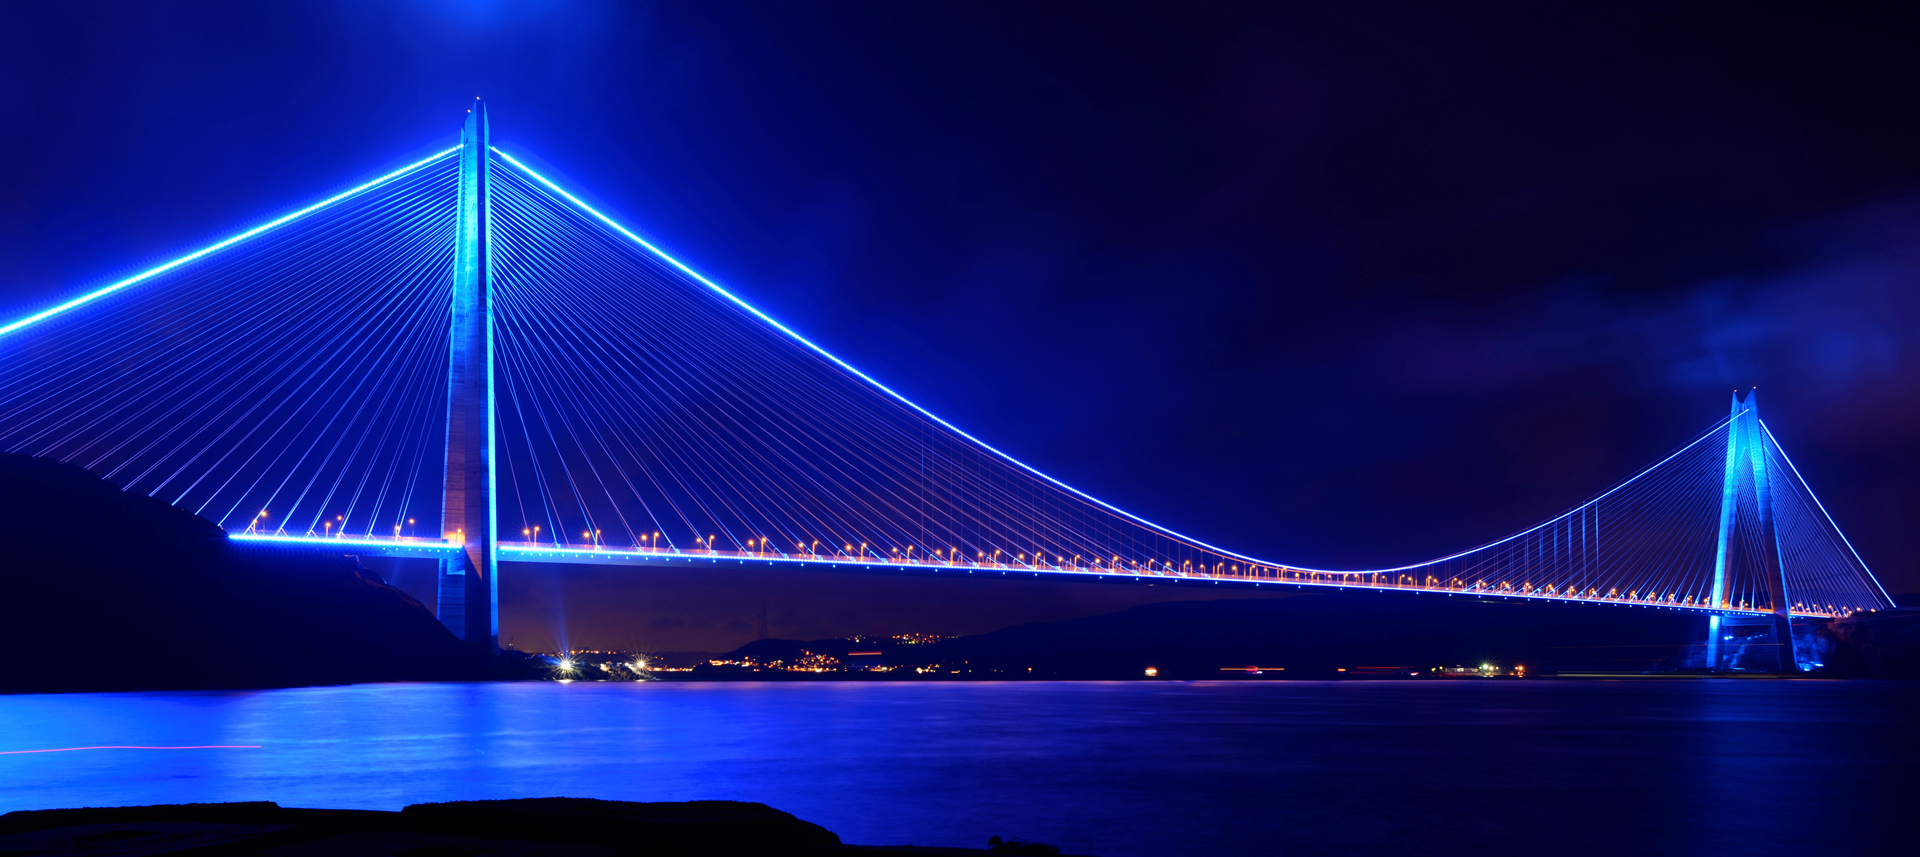 YAVUZ SULTAN SELİM BRIDGE  YAVUZ SULTAN SELİM BRIDGE  AND NORTHERN RING MOTORWAY